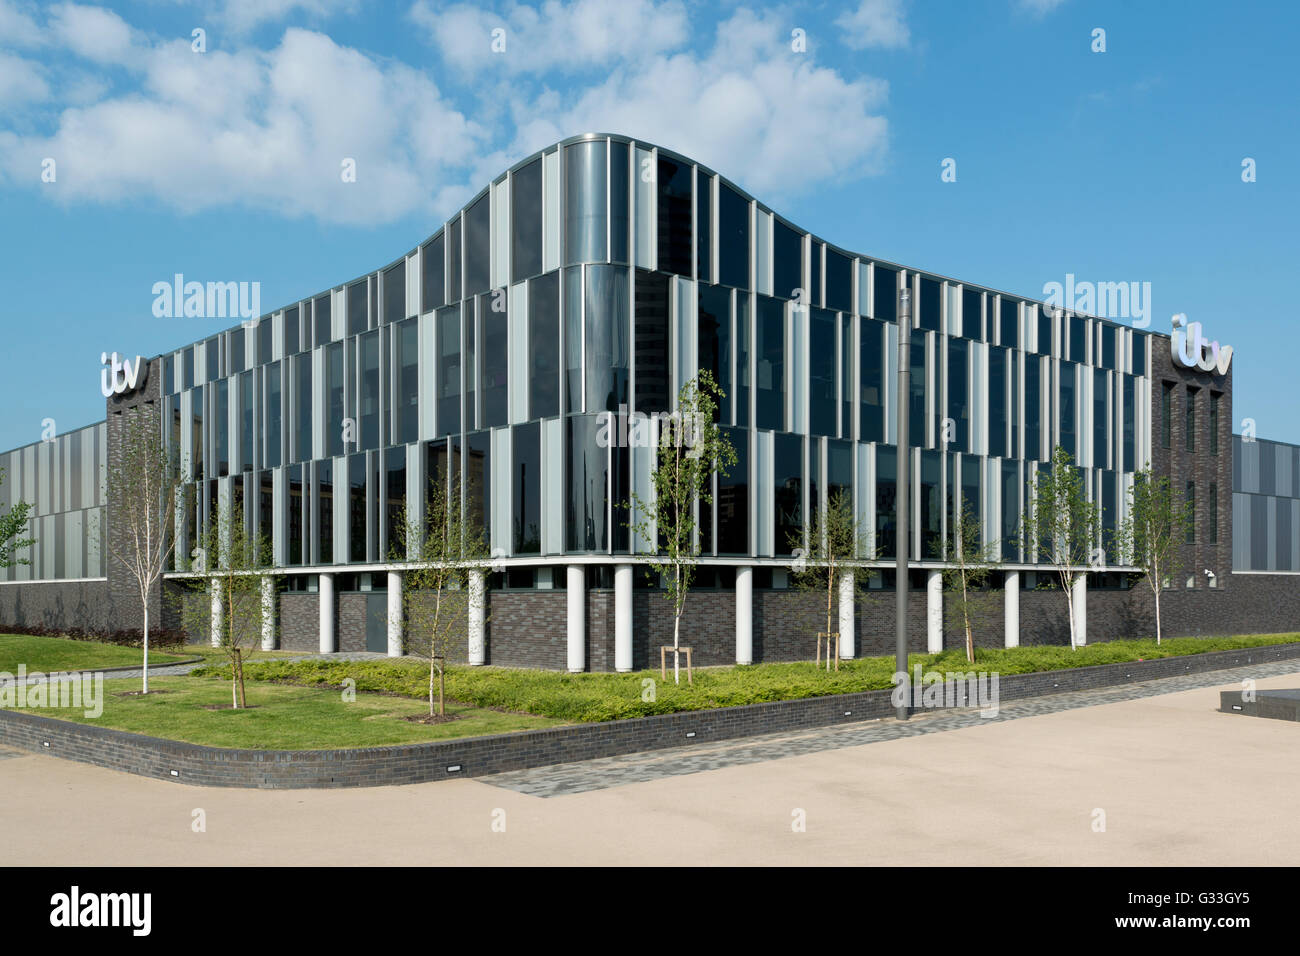 The new ITV Granada Studios located in MediaCityUK, in the Salford Quays area of Greater Manchester. - Stock Image